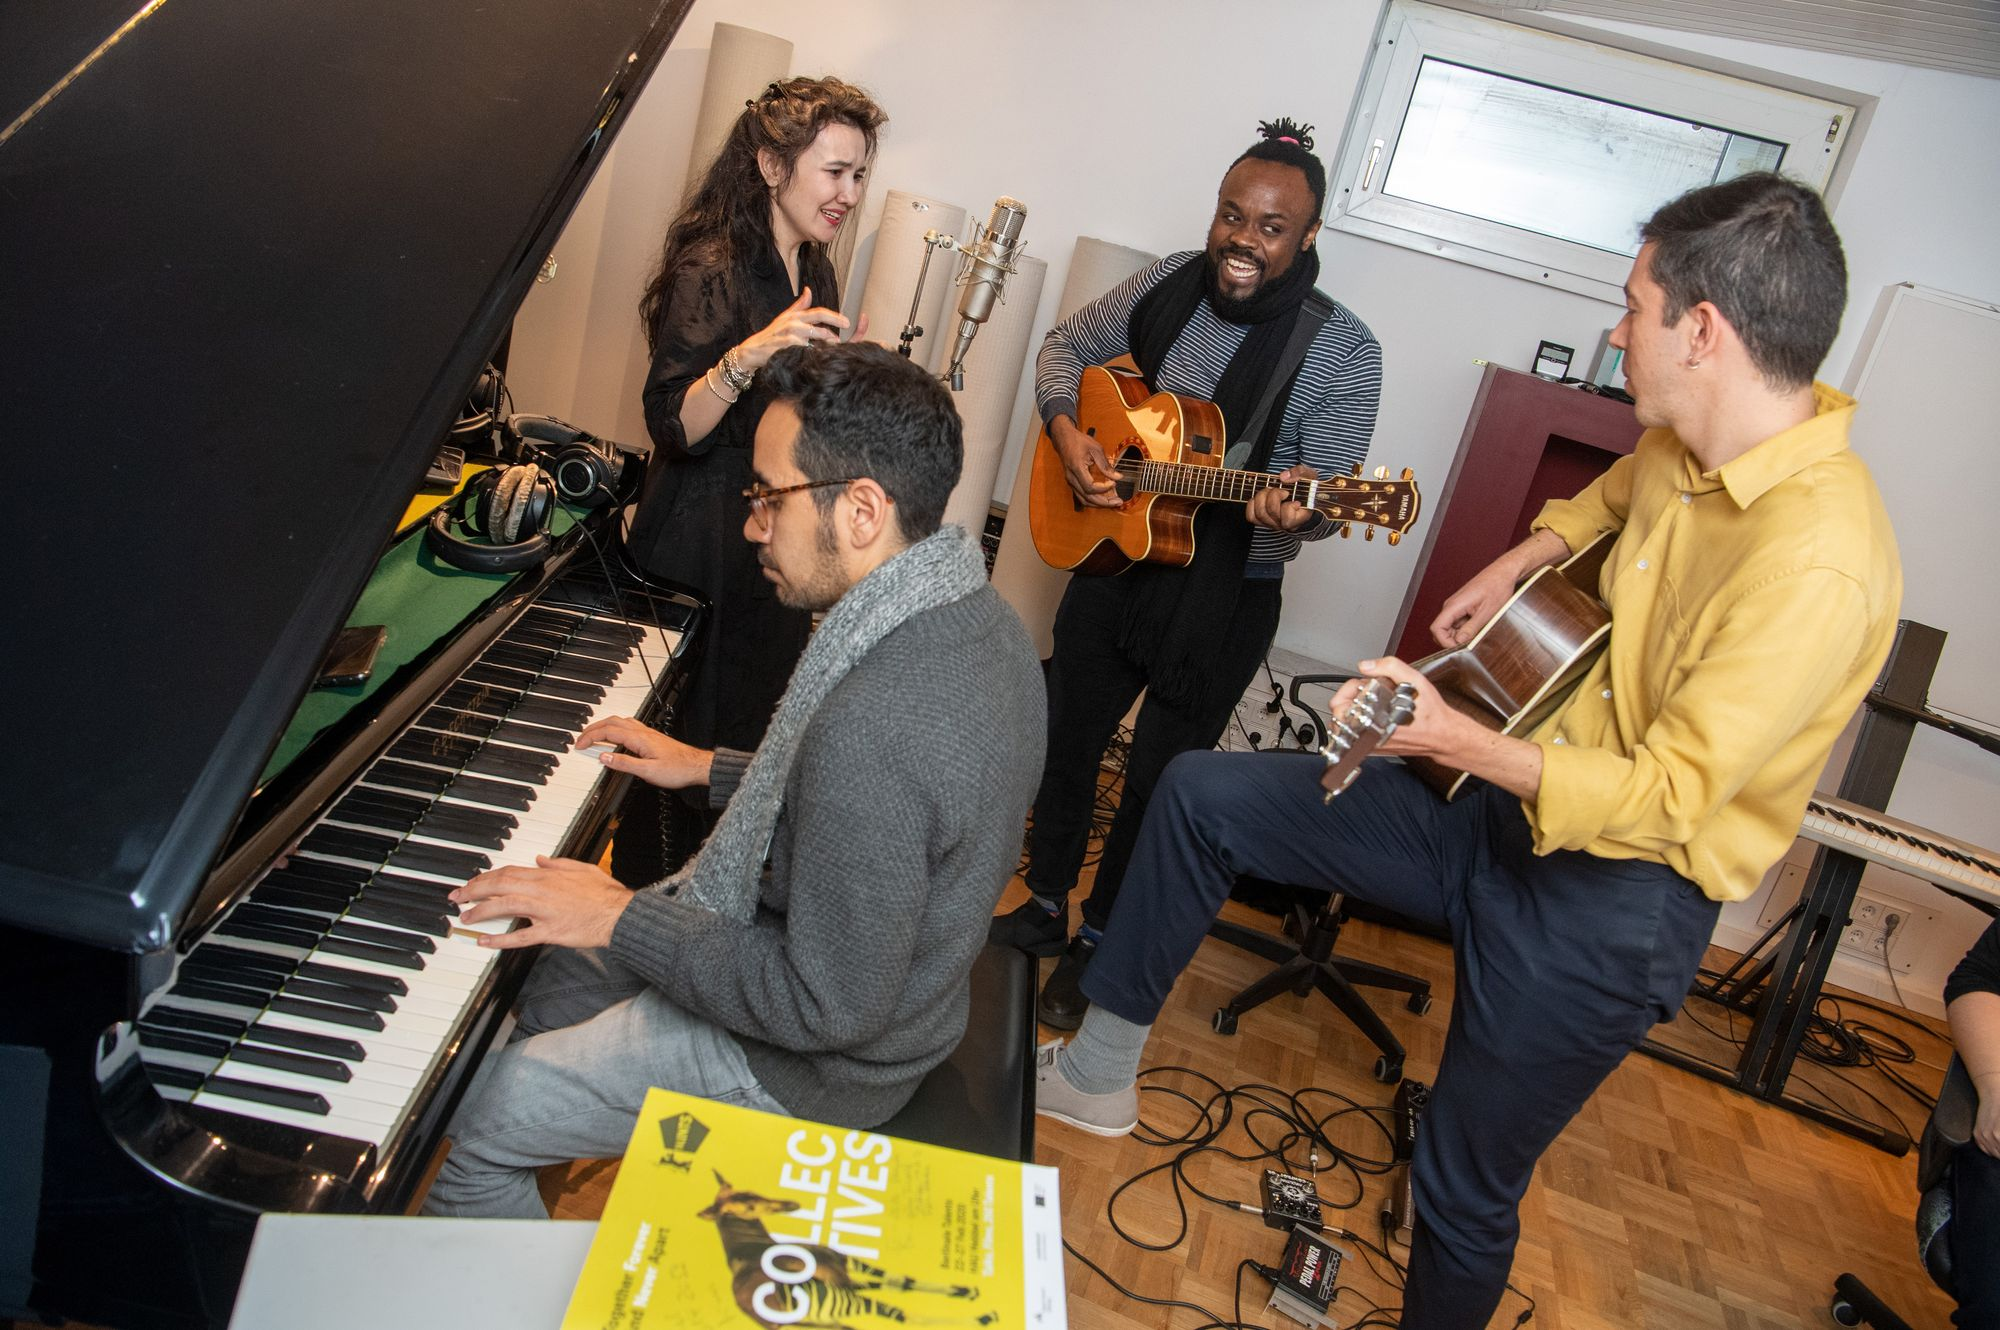 Mergen, Kenji Kishi, Ange de Costa and Pablo Scopinaro making music at the Sound Studio Workshop.